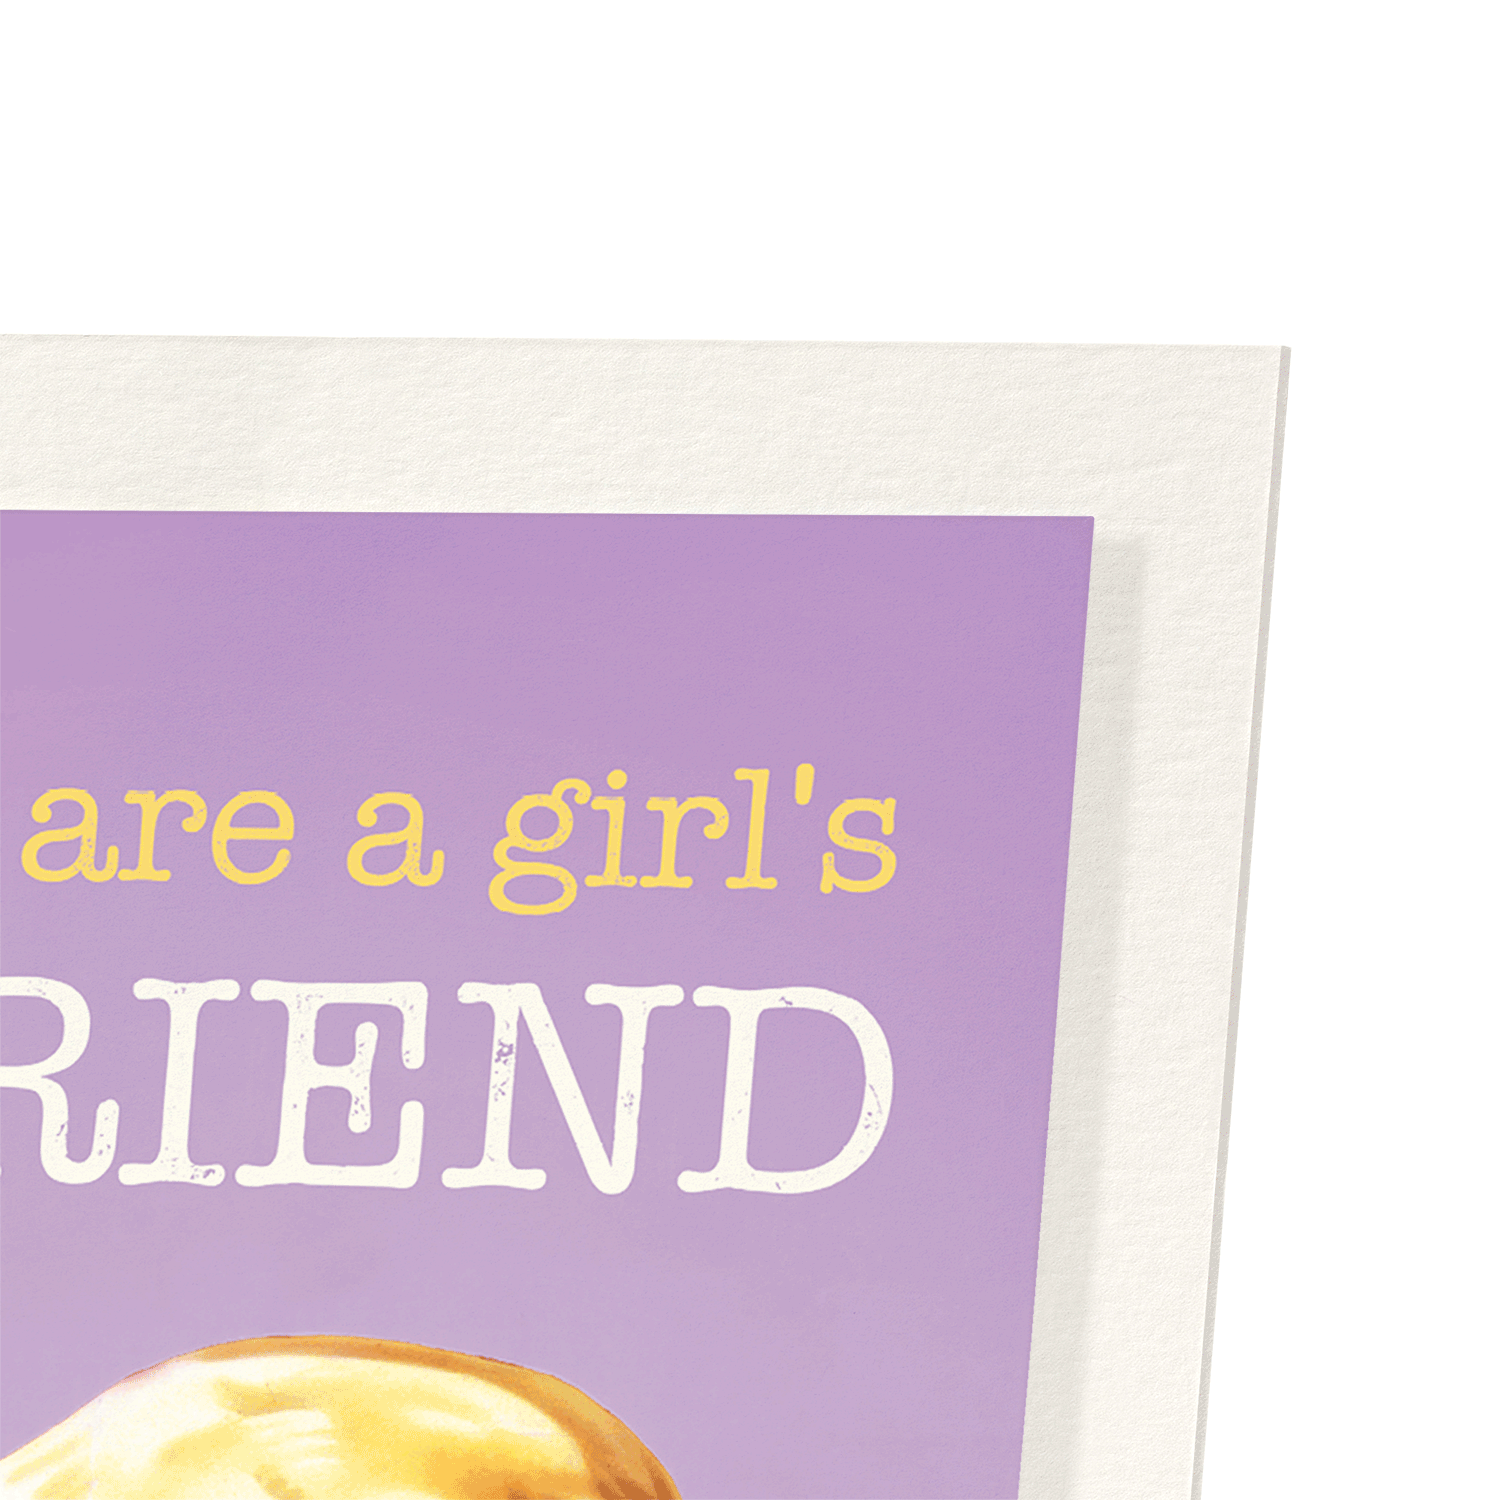 BOOKS ARE A GIRL'S BEST FRIEND: 2xPrints